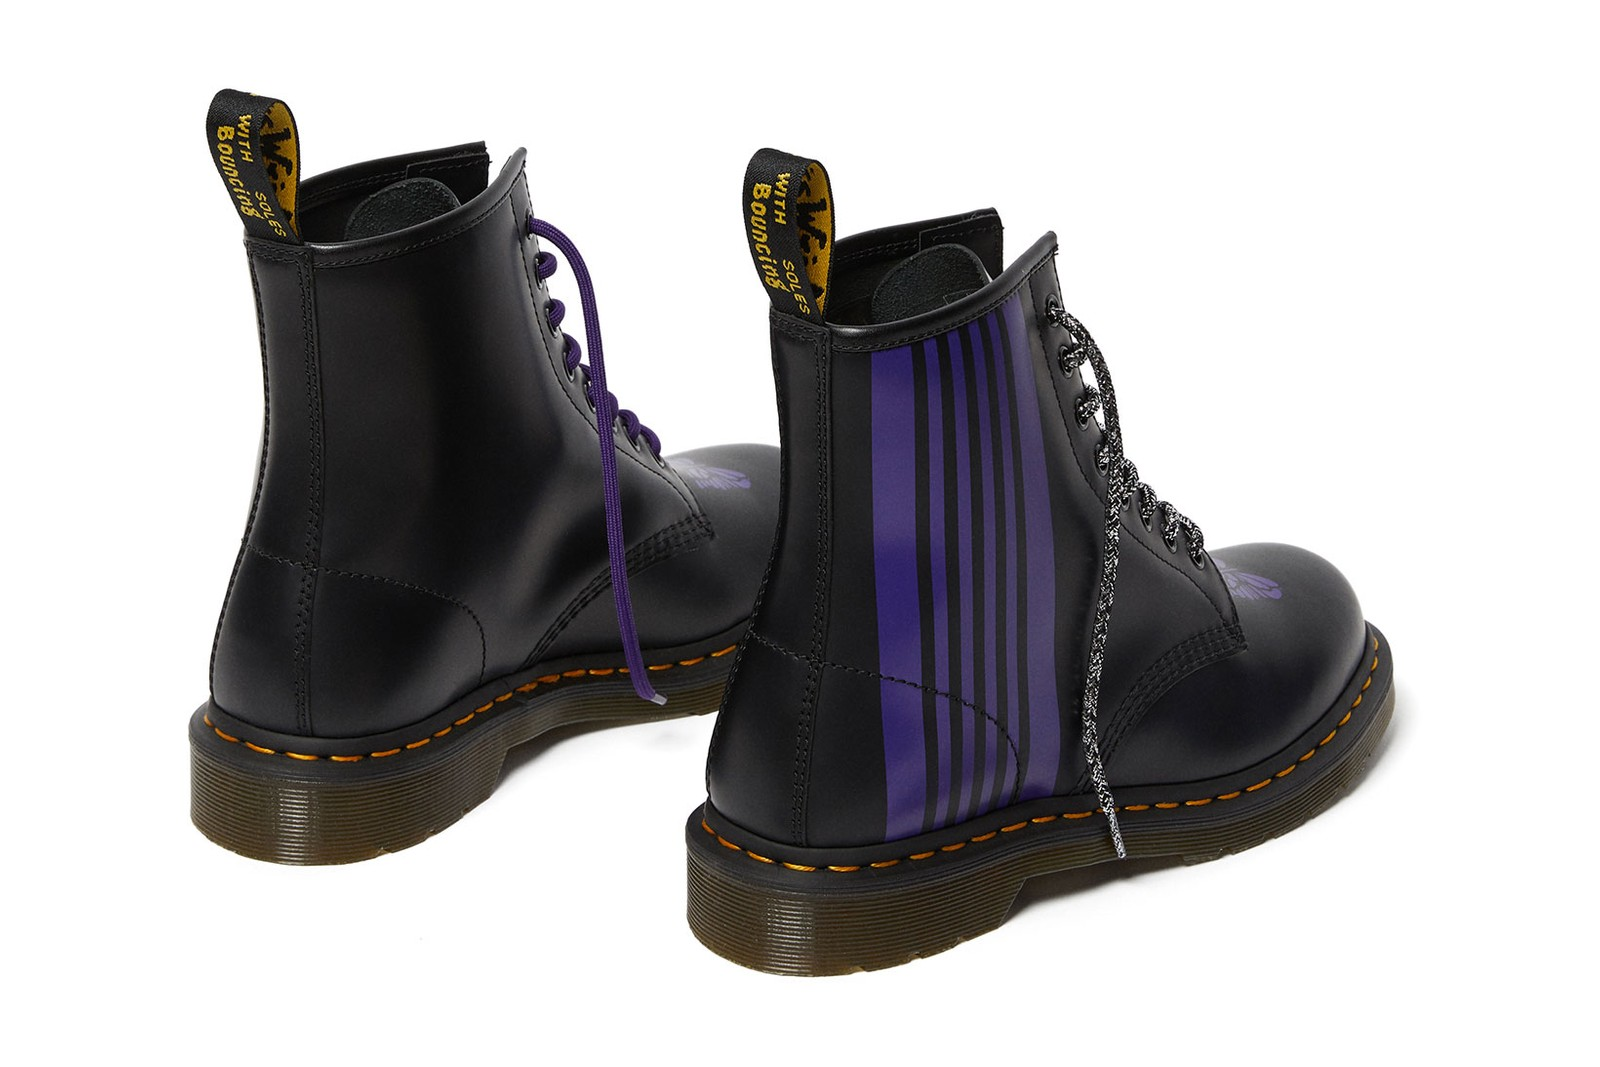 needles dr. martens 1460 remastered collaboration boots purple butterflies